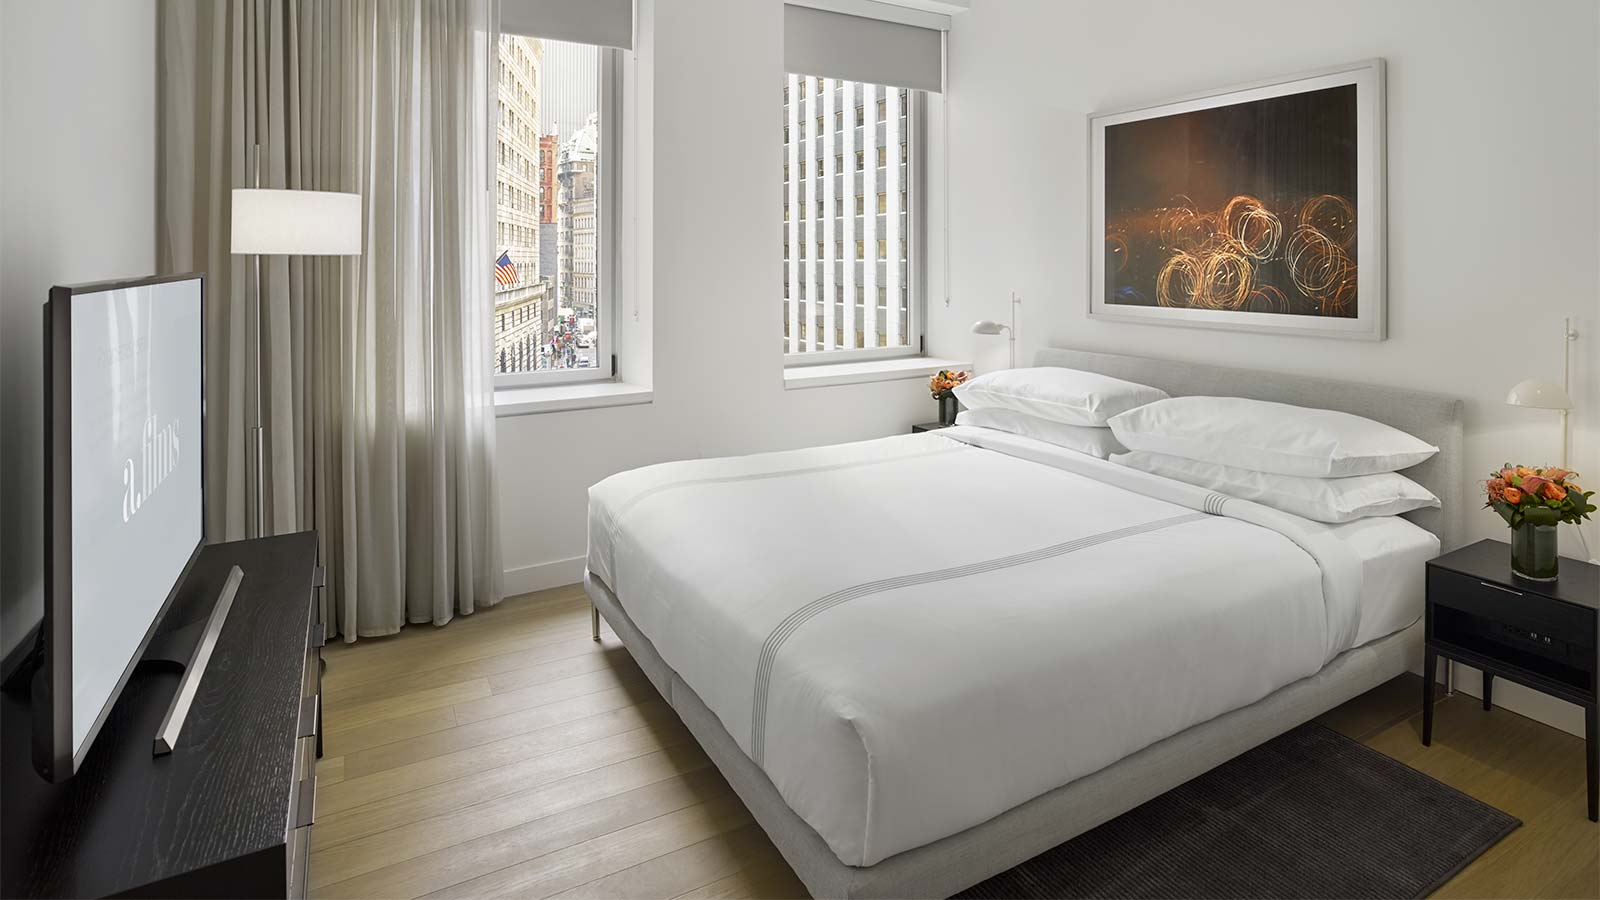 Design Bed Kopen.Best Hotel Beds And Where To Buy Them Cnn Travel